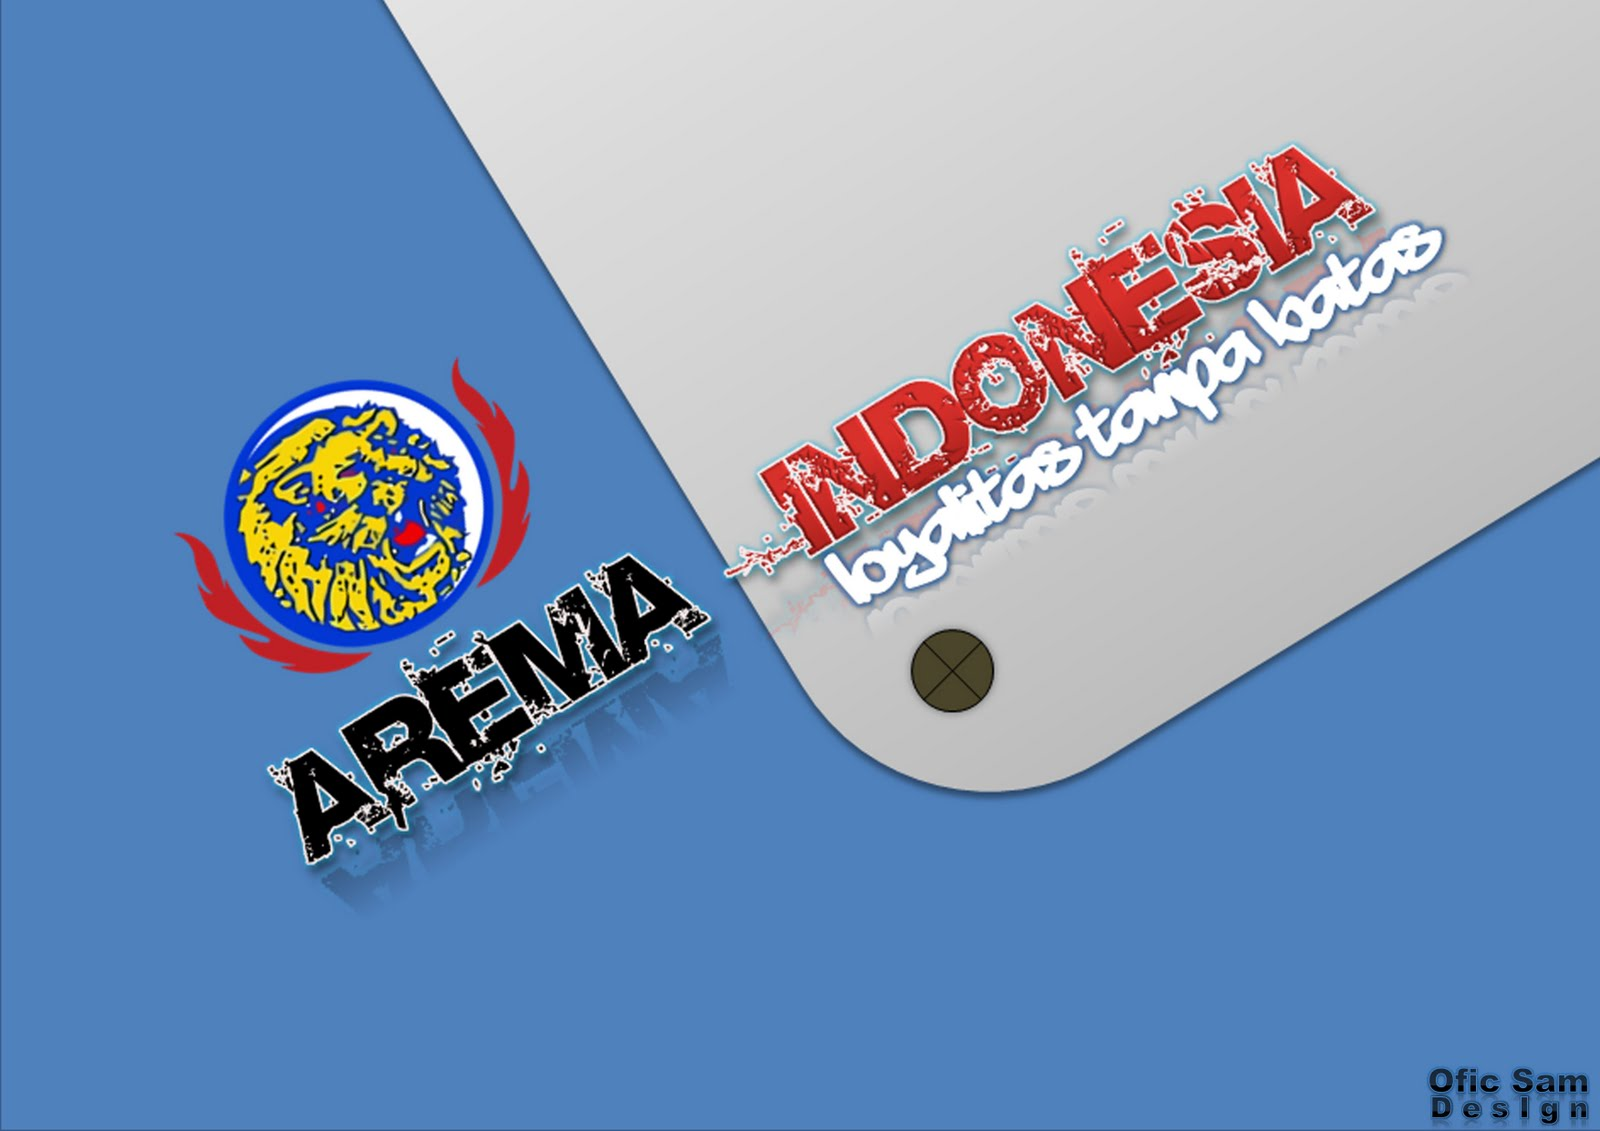 hd wallon  Wallpaper Arema Indonesia 2011